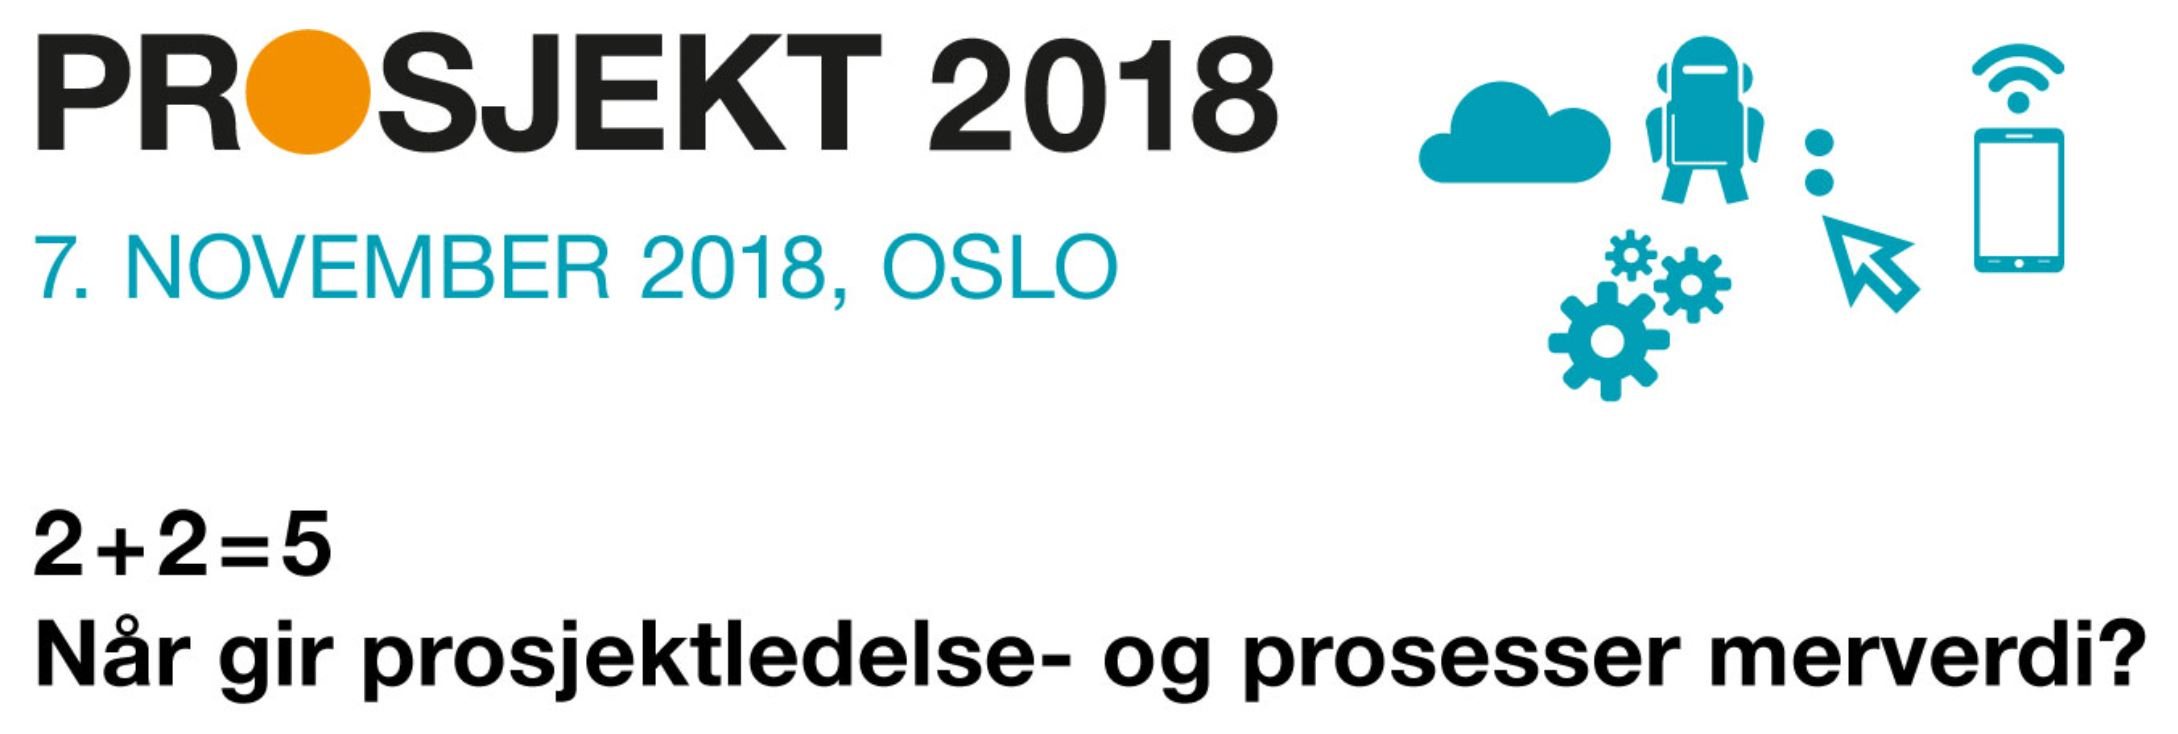 EARLY BIRD 30. juni | Program og påmelding: